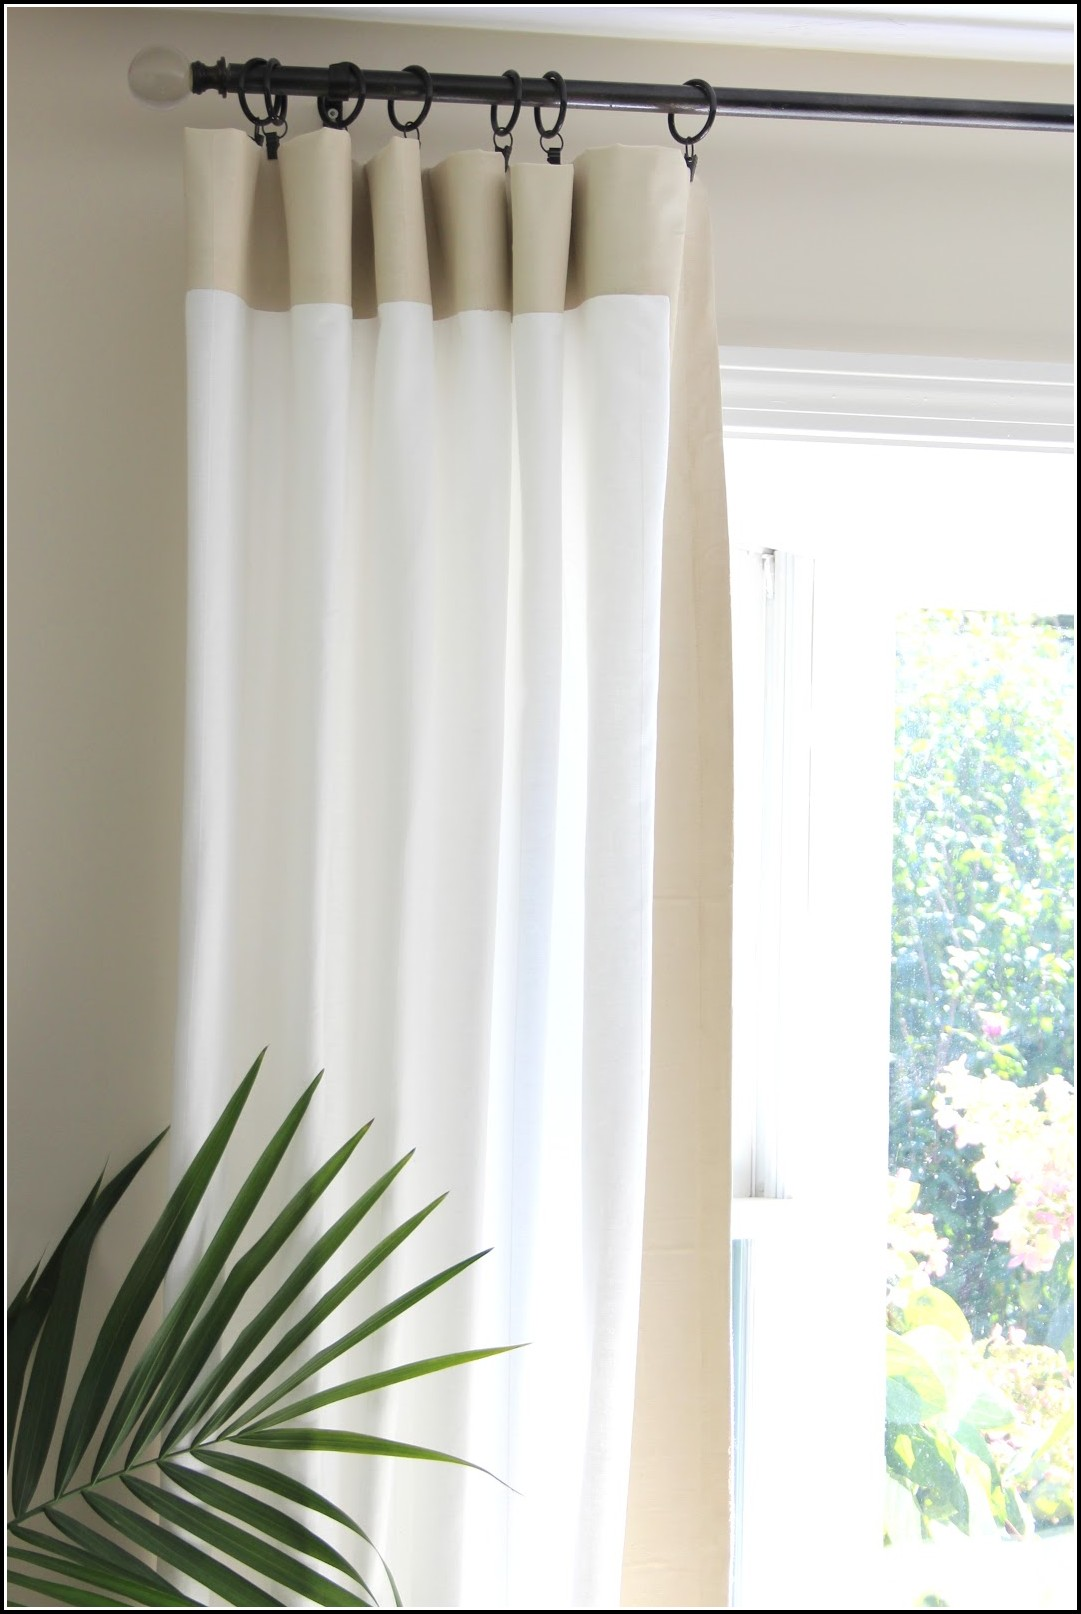 White Wood Curtain Rods Set Curtains Home Design Ideas 8zdvzrgdqa33906